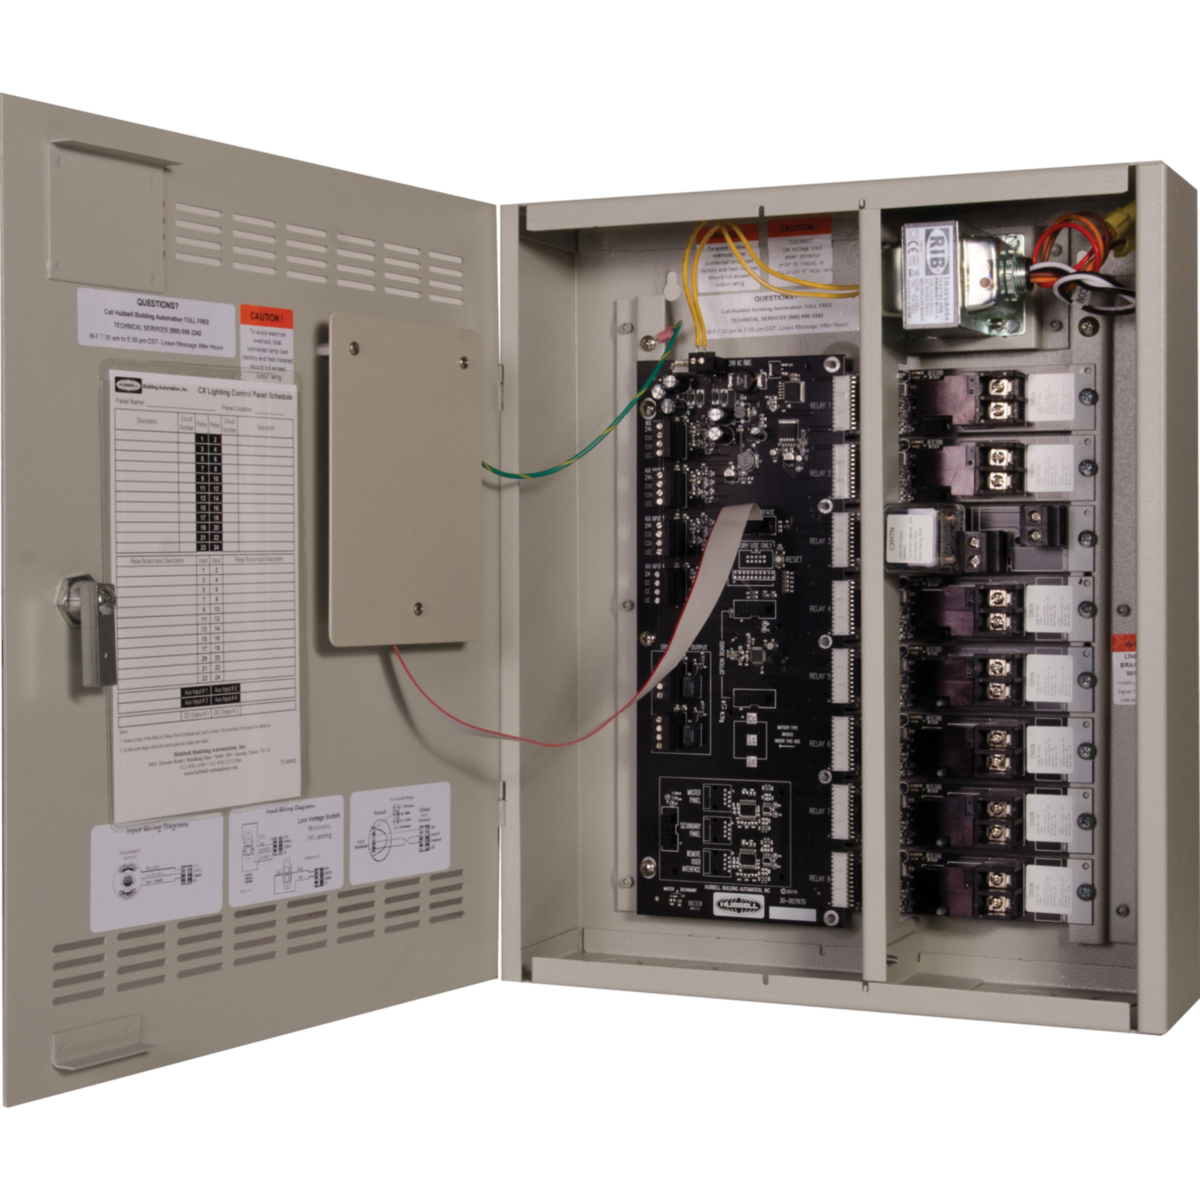 CX Lighting Control Panels 4, 8, 16 and 24 Relays | Hubbell